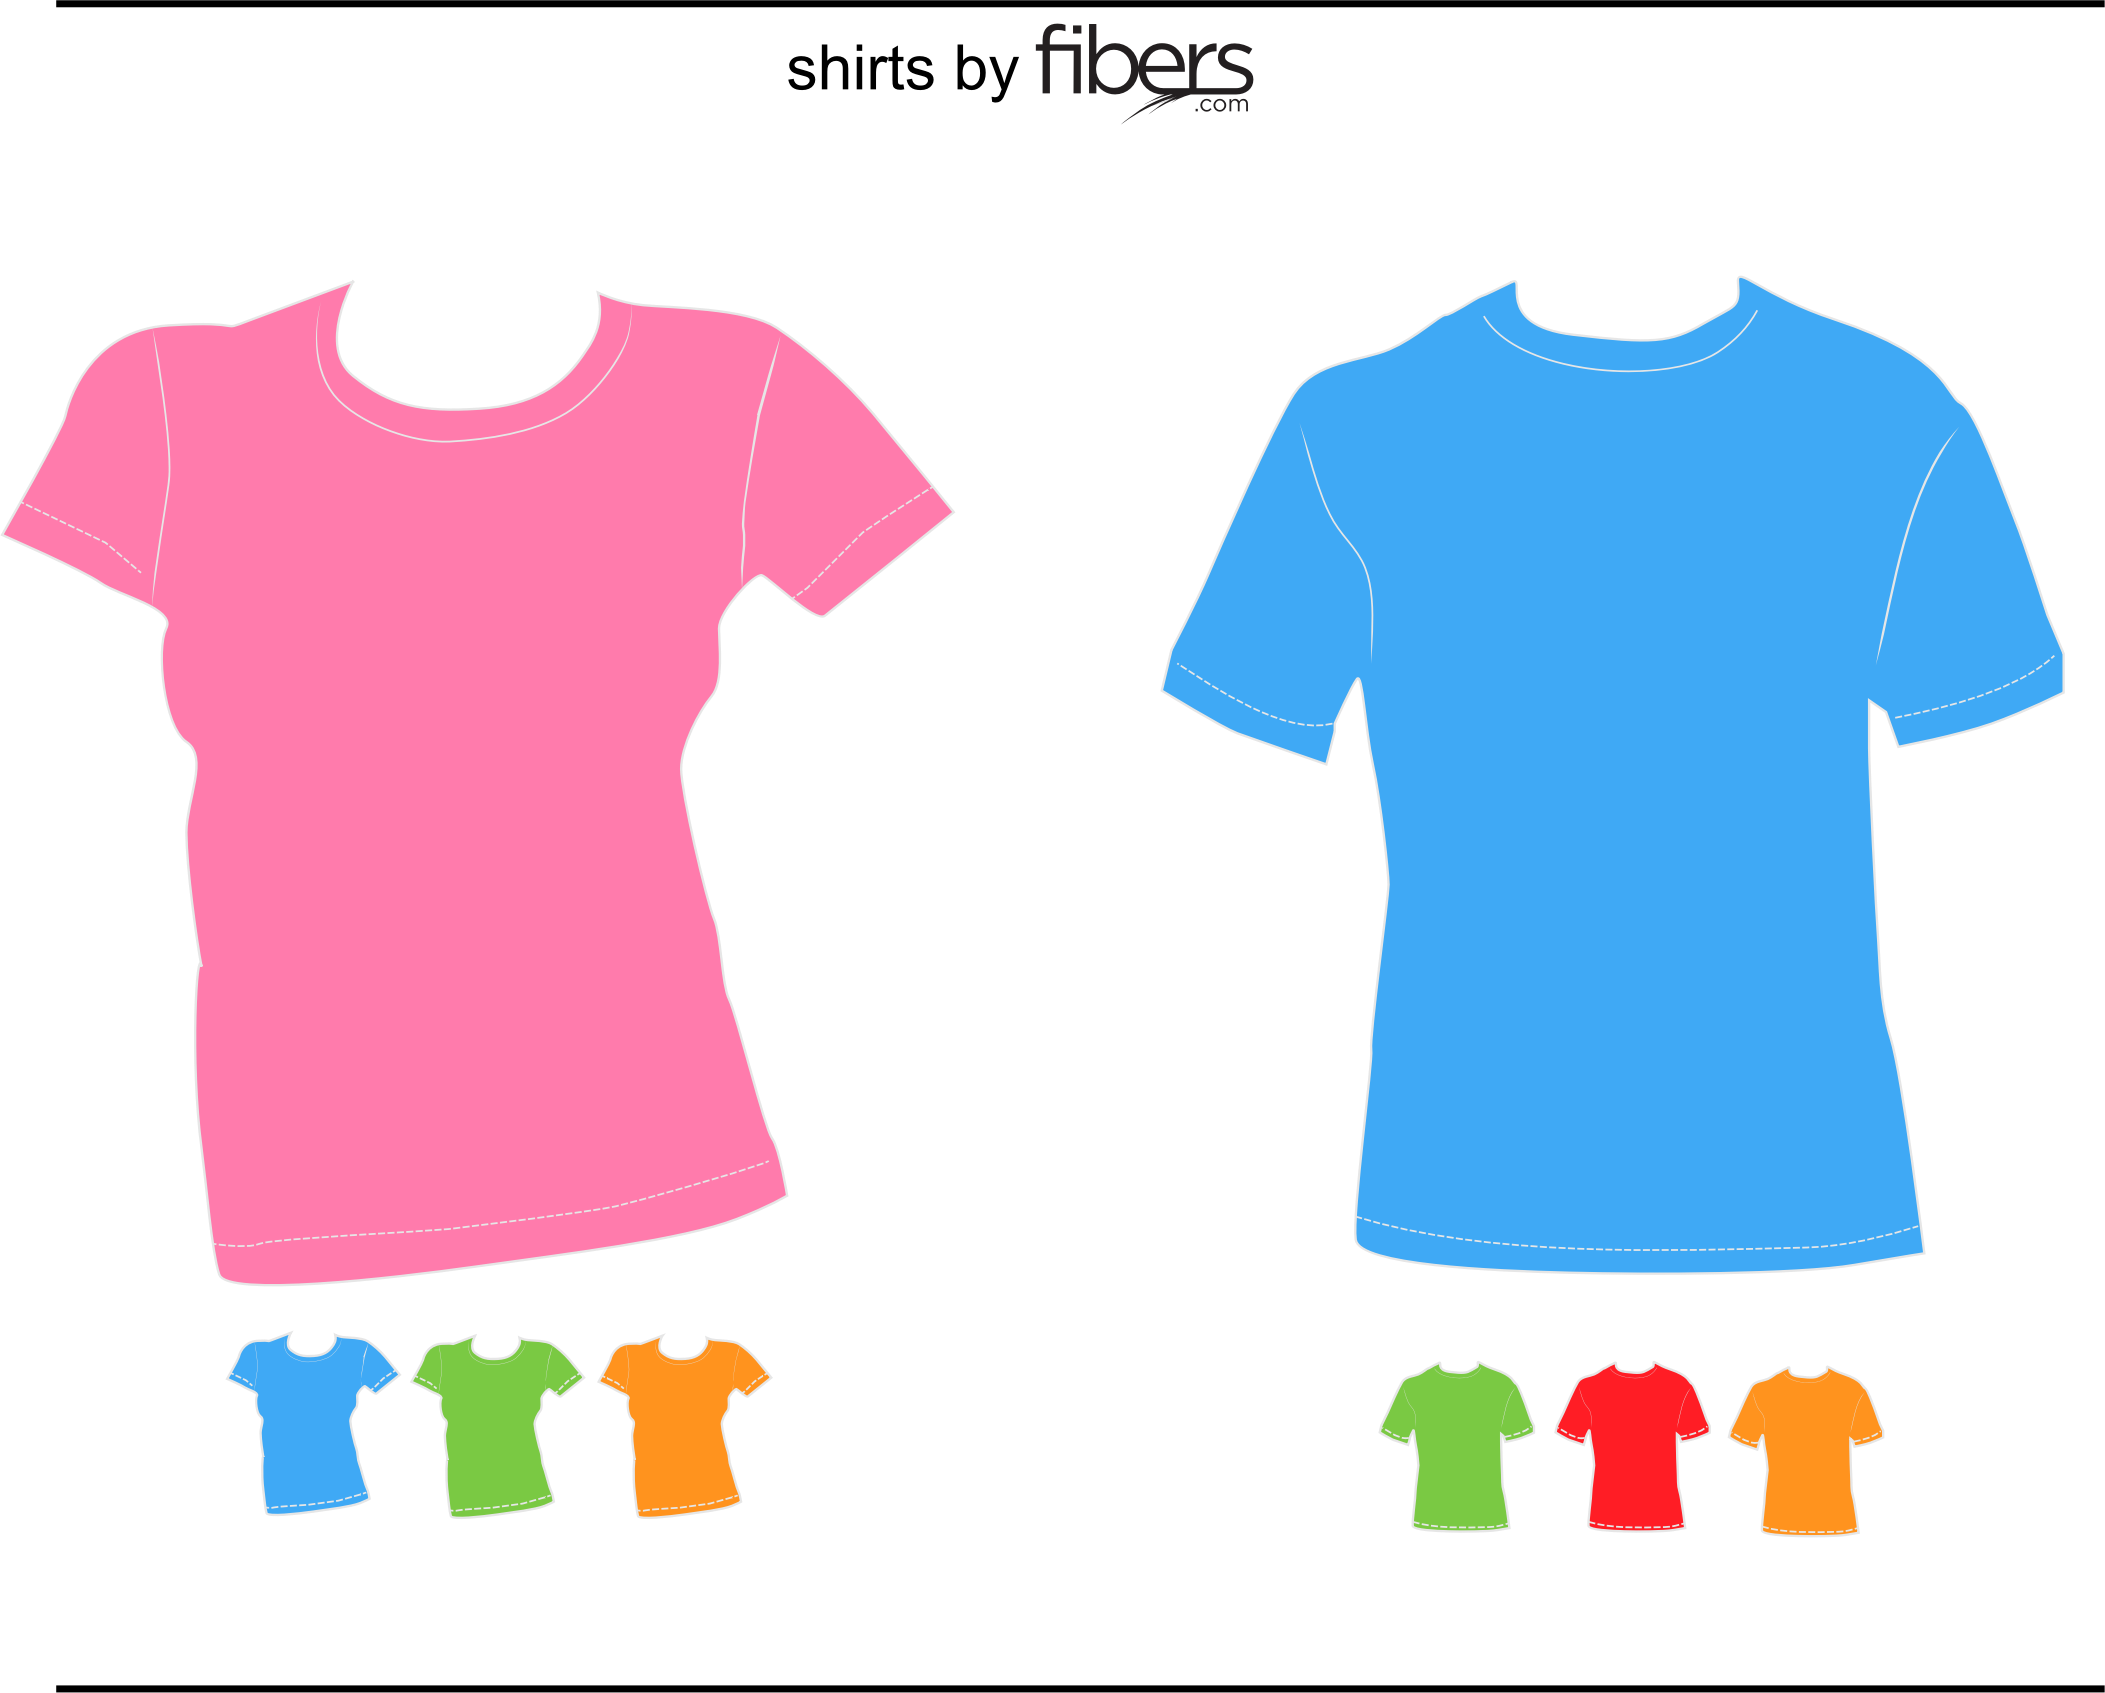 Fibers.com Vector T-Shirt Templates by Fibers